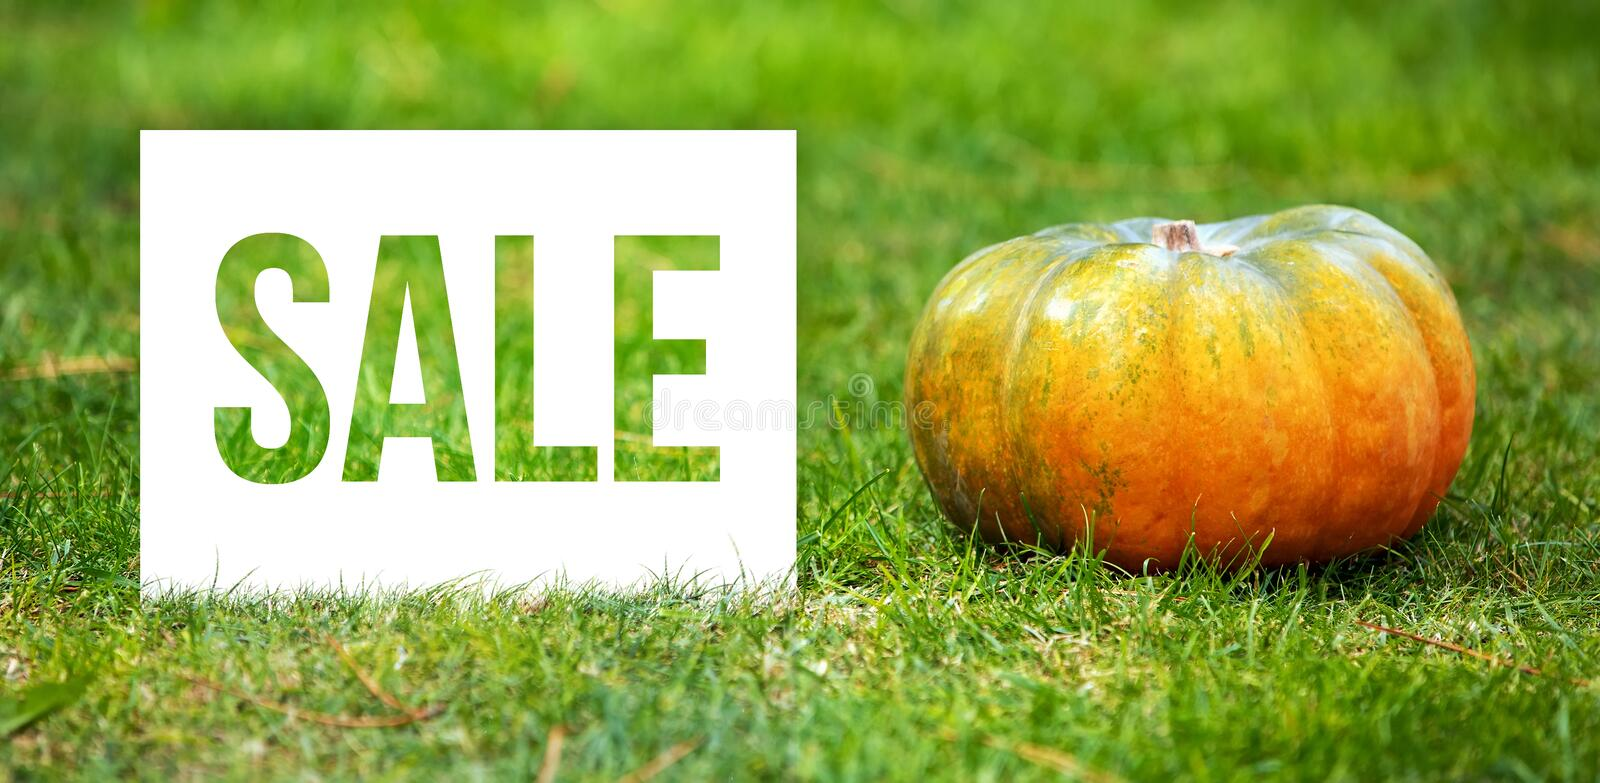 Sale message with orange and green pumpkin. royalty free stock image